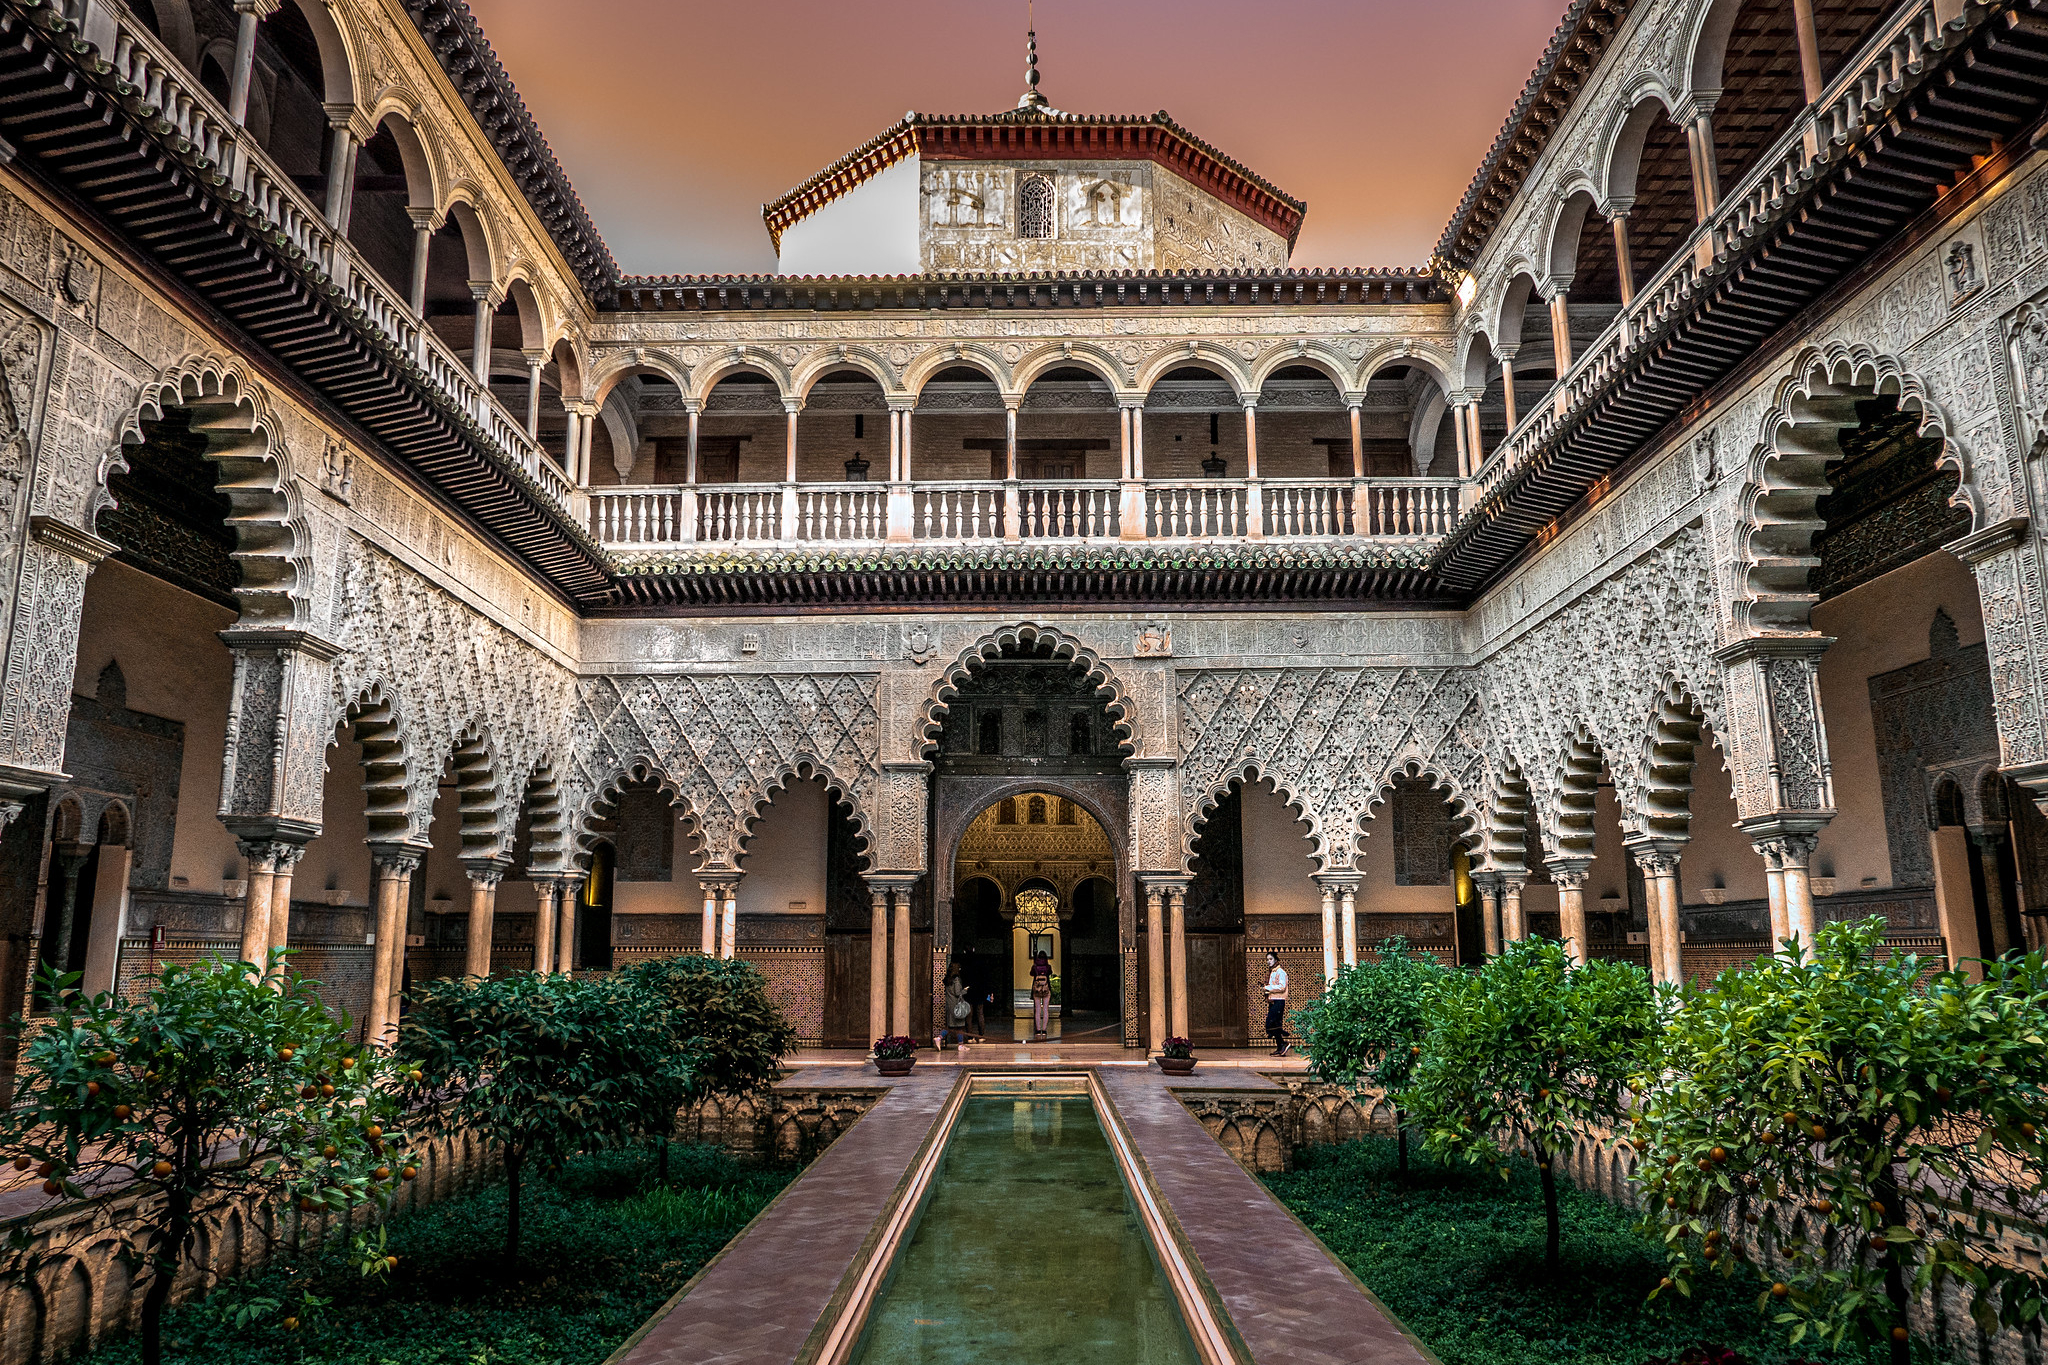 Audio guides of the Real Alcázar of Seville